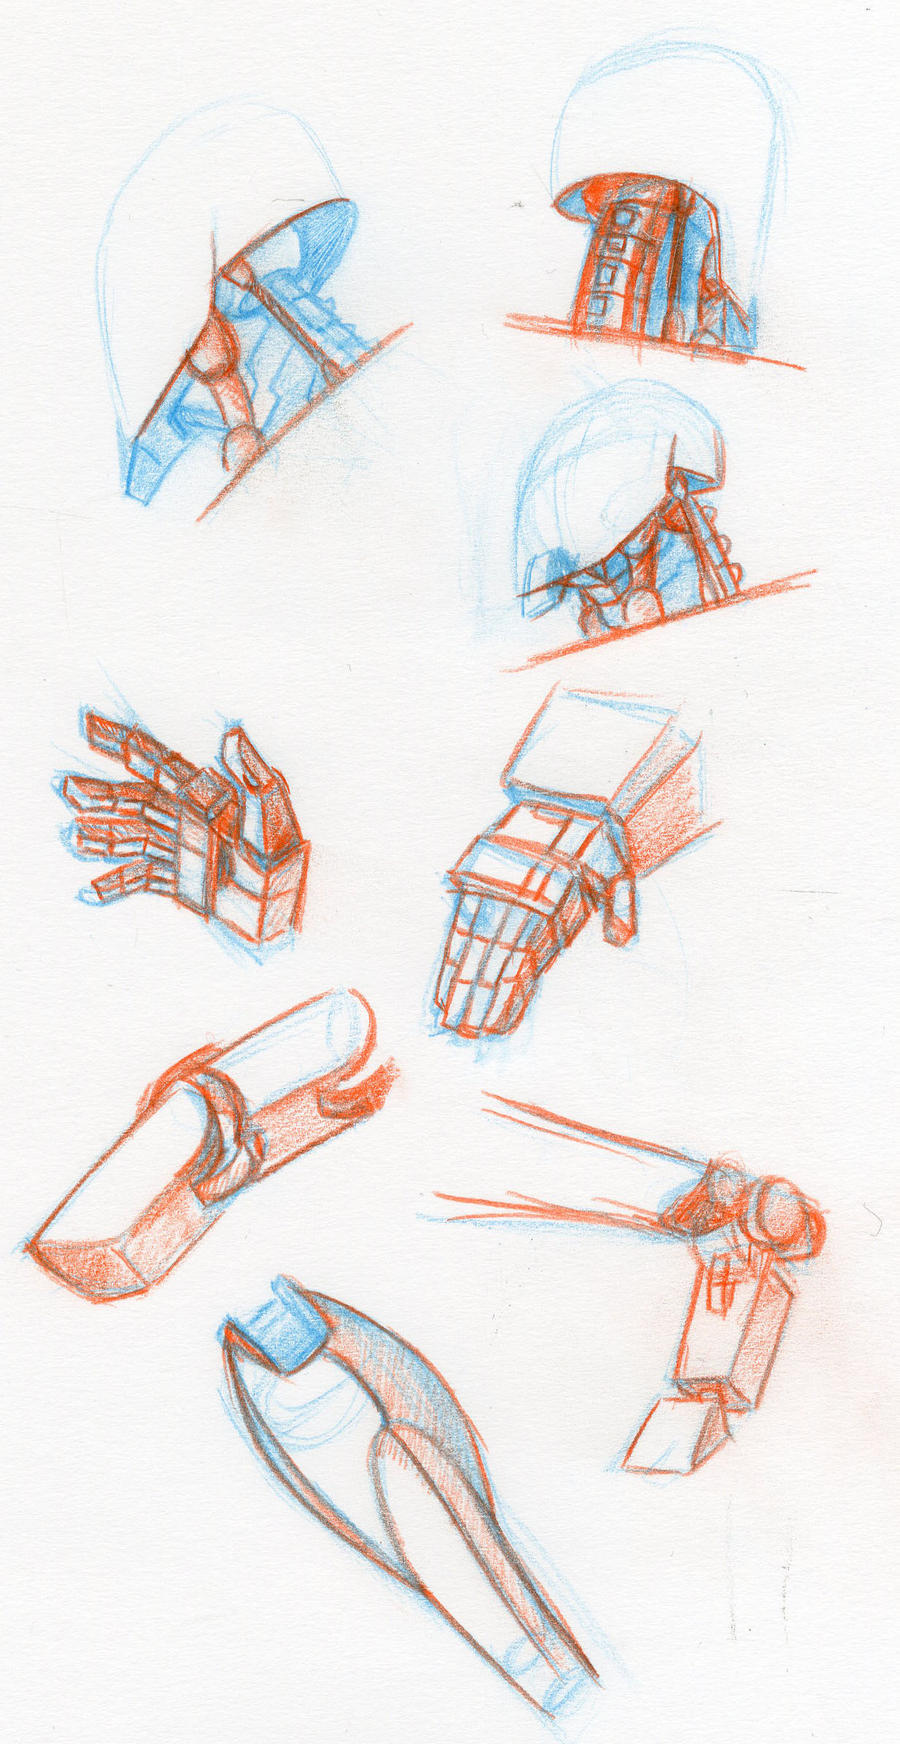 mecha anatomy sketches by LyricaBelachium